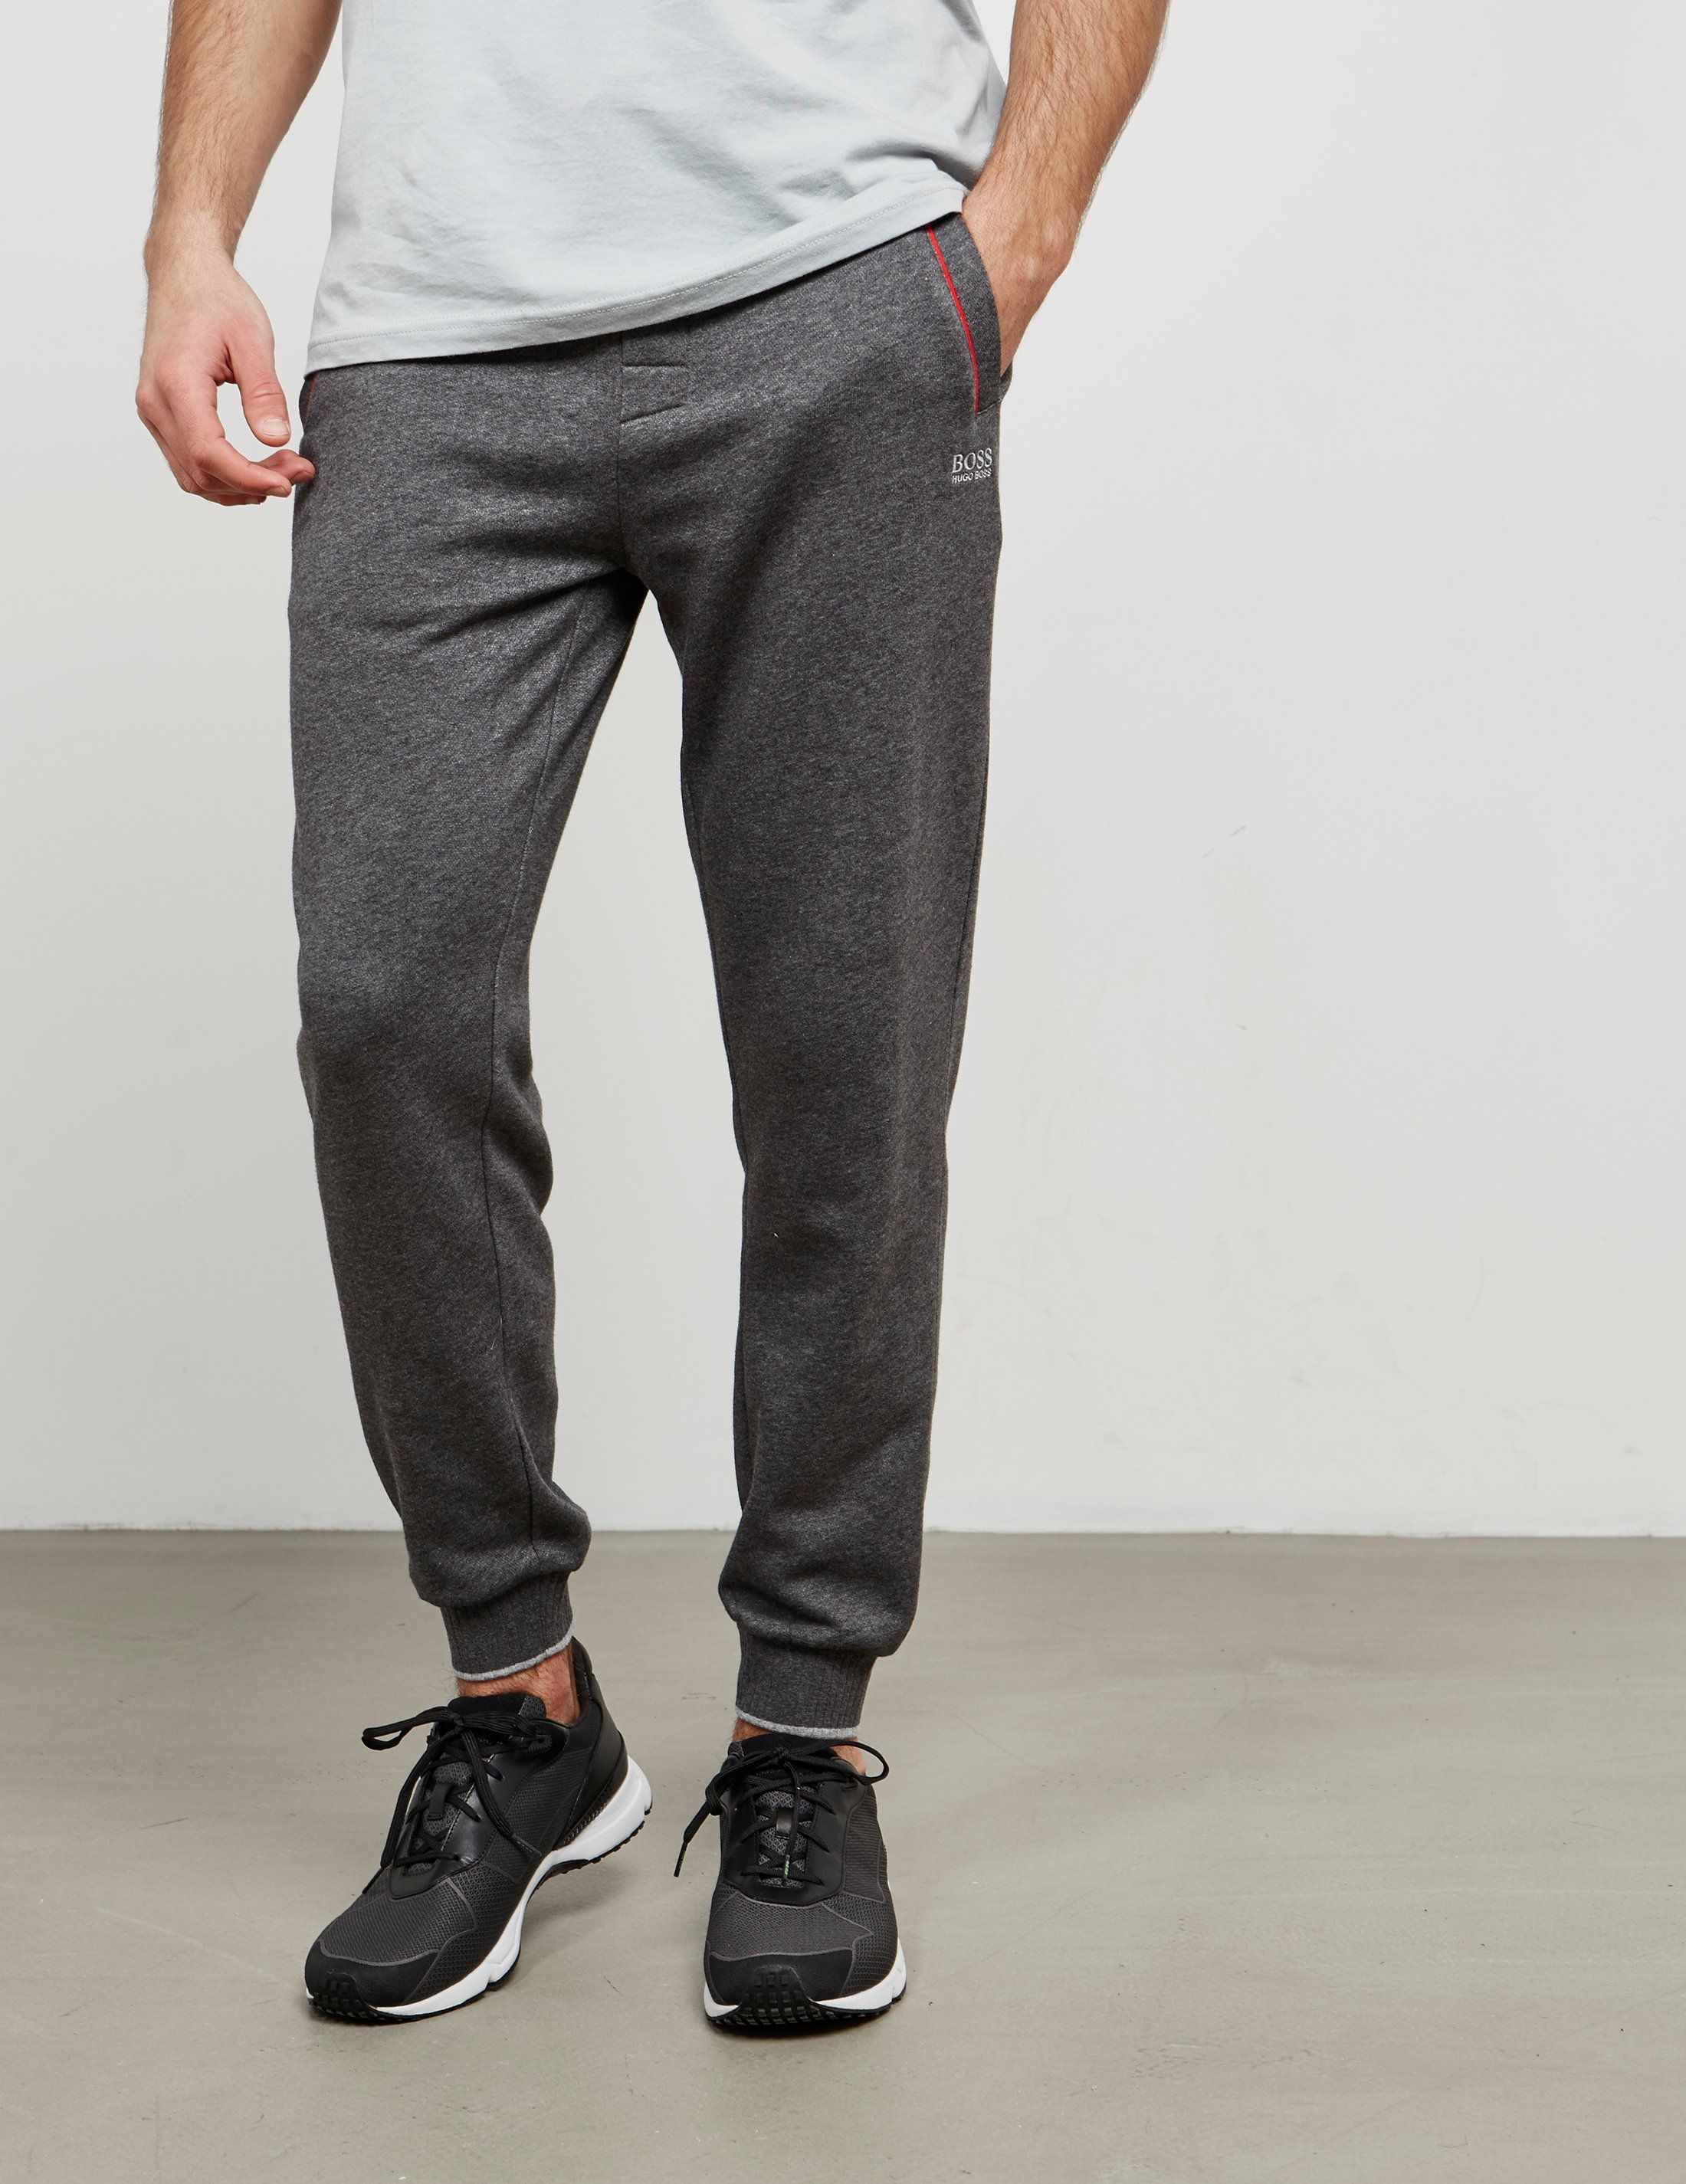 BOSS Authentic Cuffed Track Pants